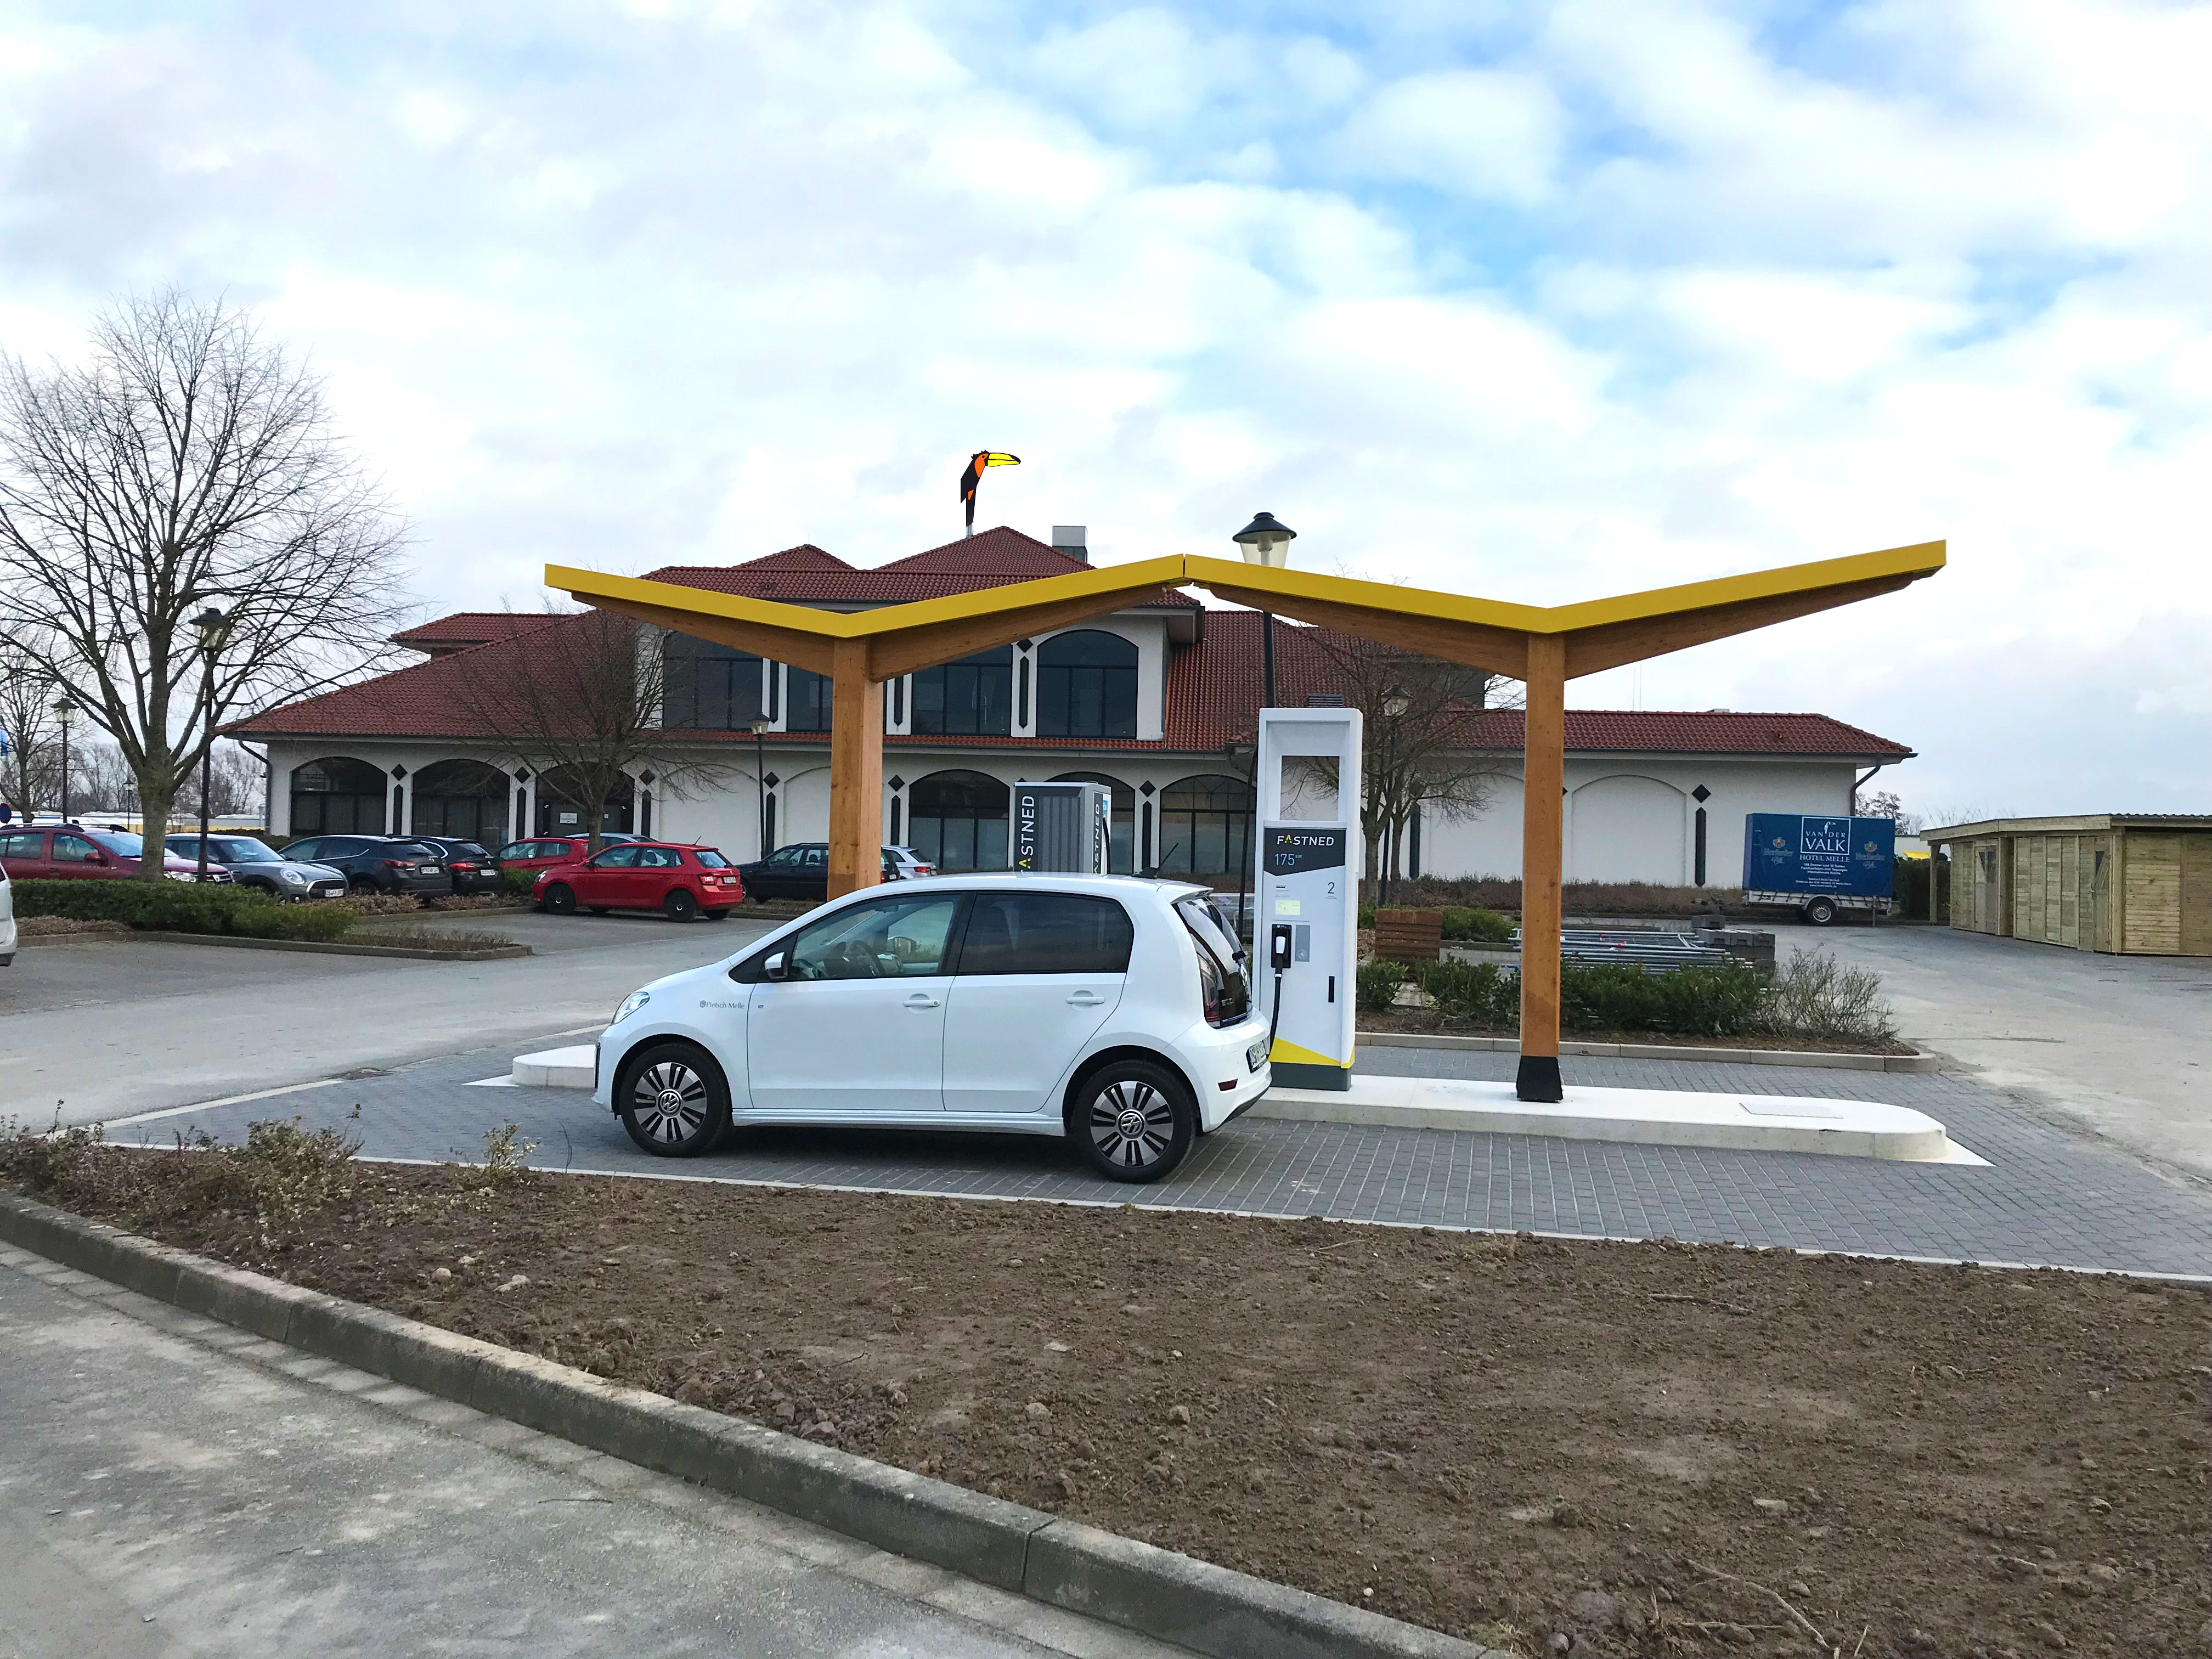 303462 fastned%20fast%20charging%20station 88 melle germany 480a5d original 1550052515